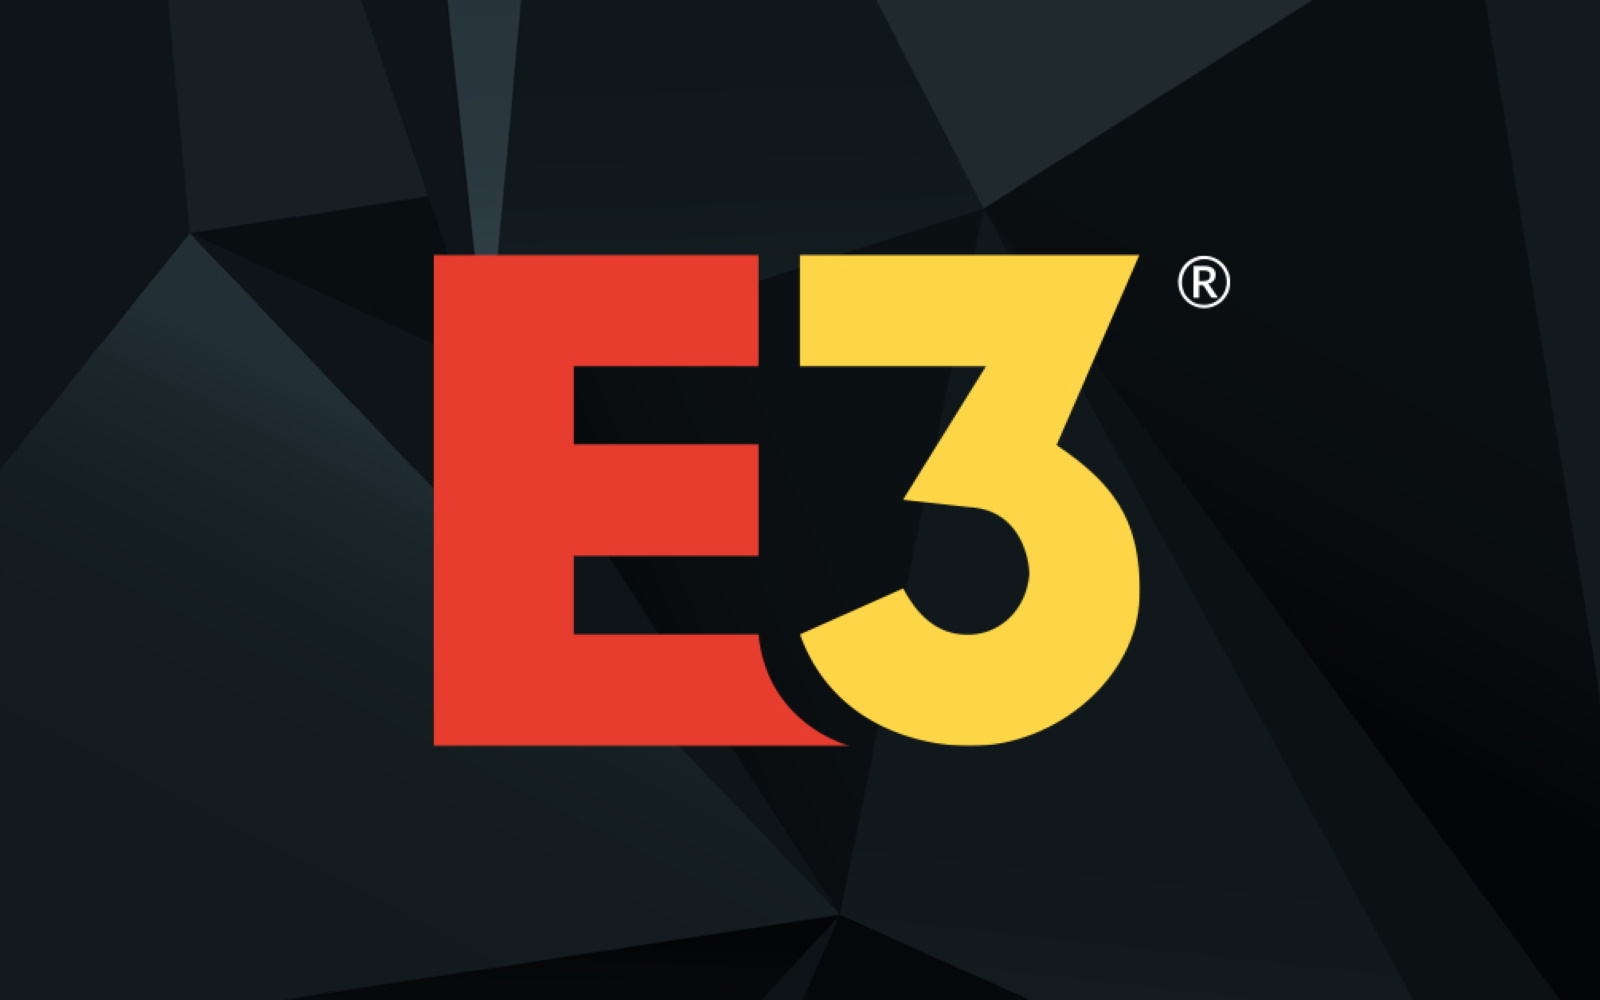 E3 Will Return For An All-Digital Event In June 2021